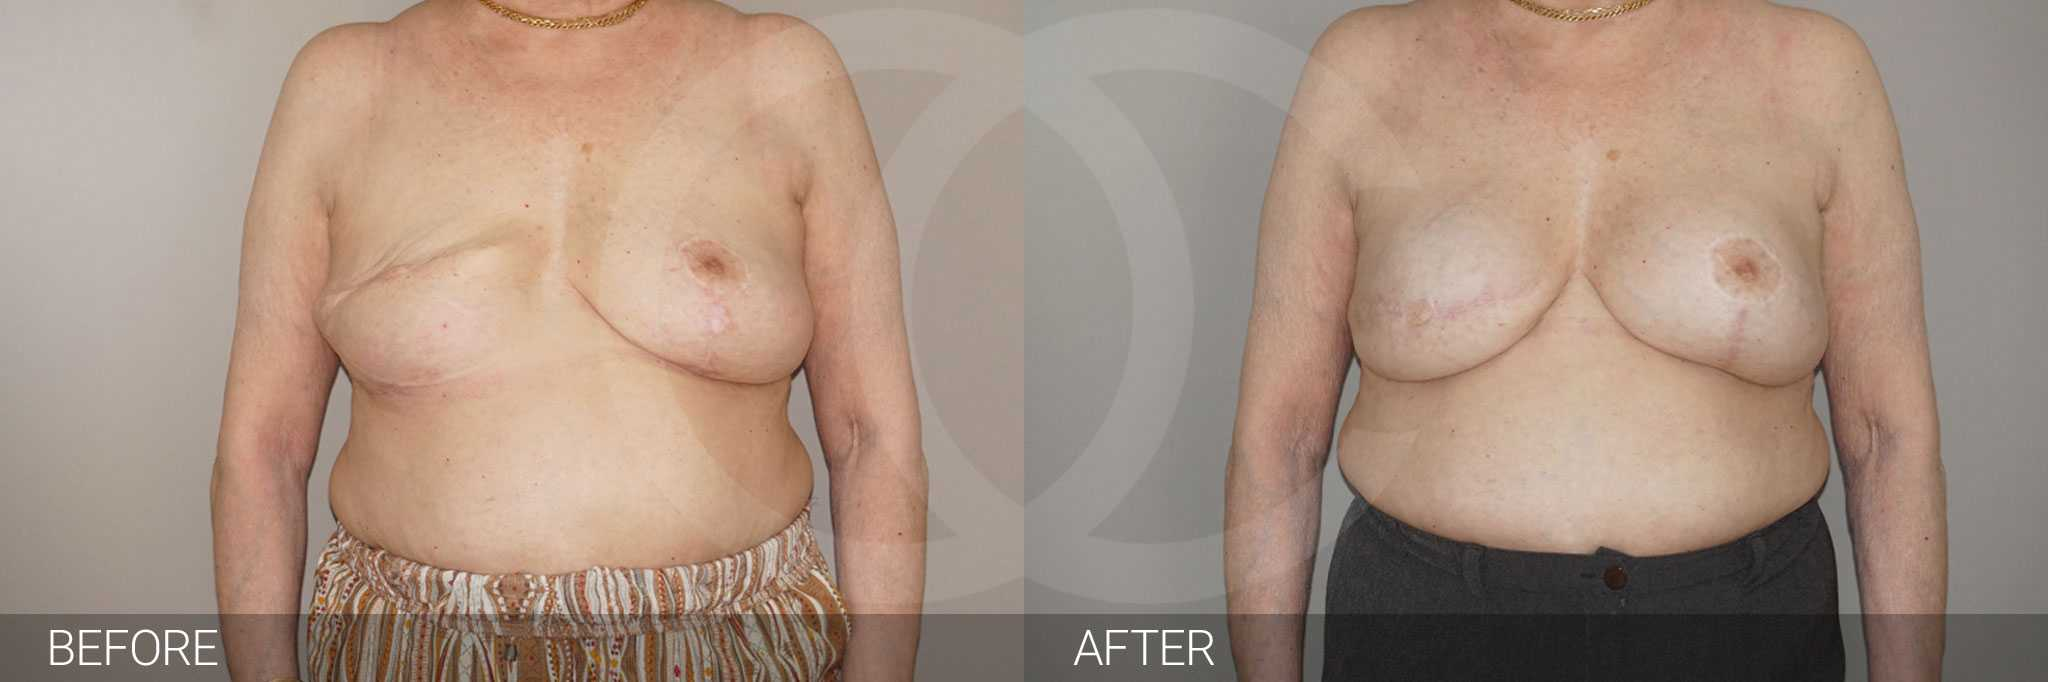 Breast Reconstruction after breast cancer ante/post-op I